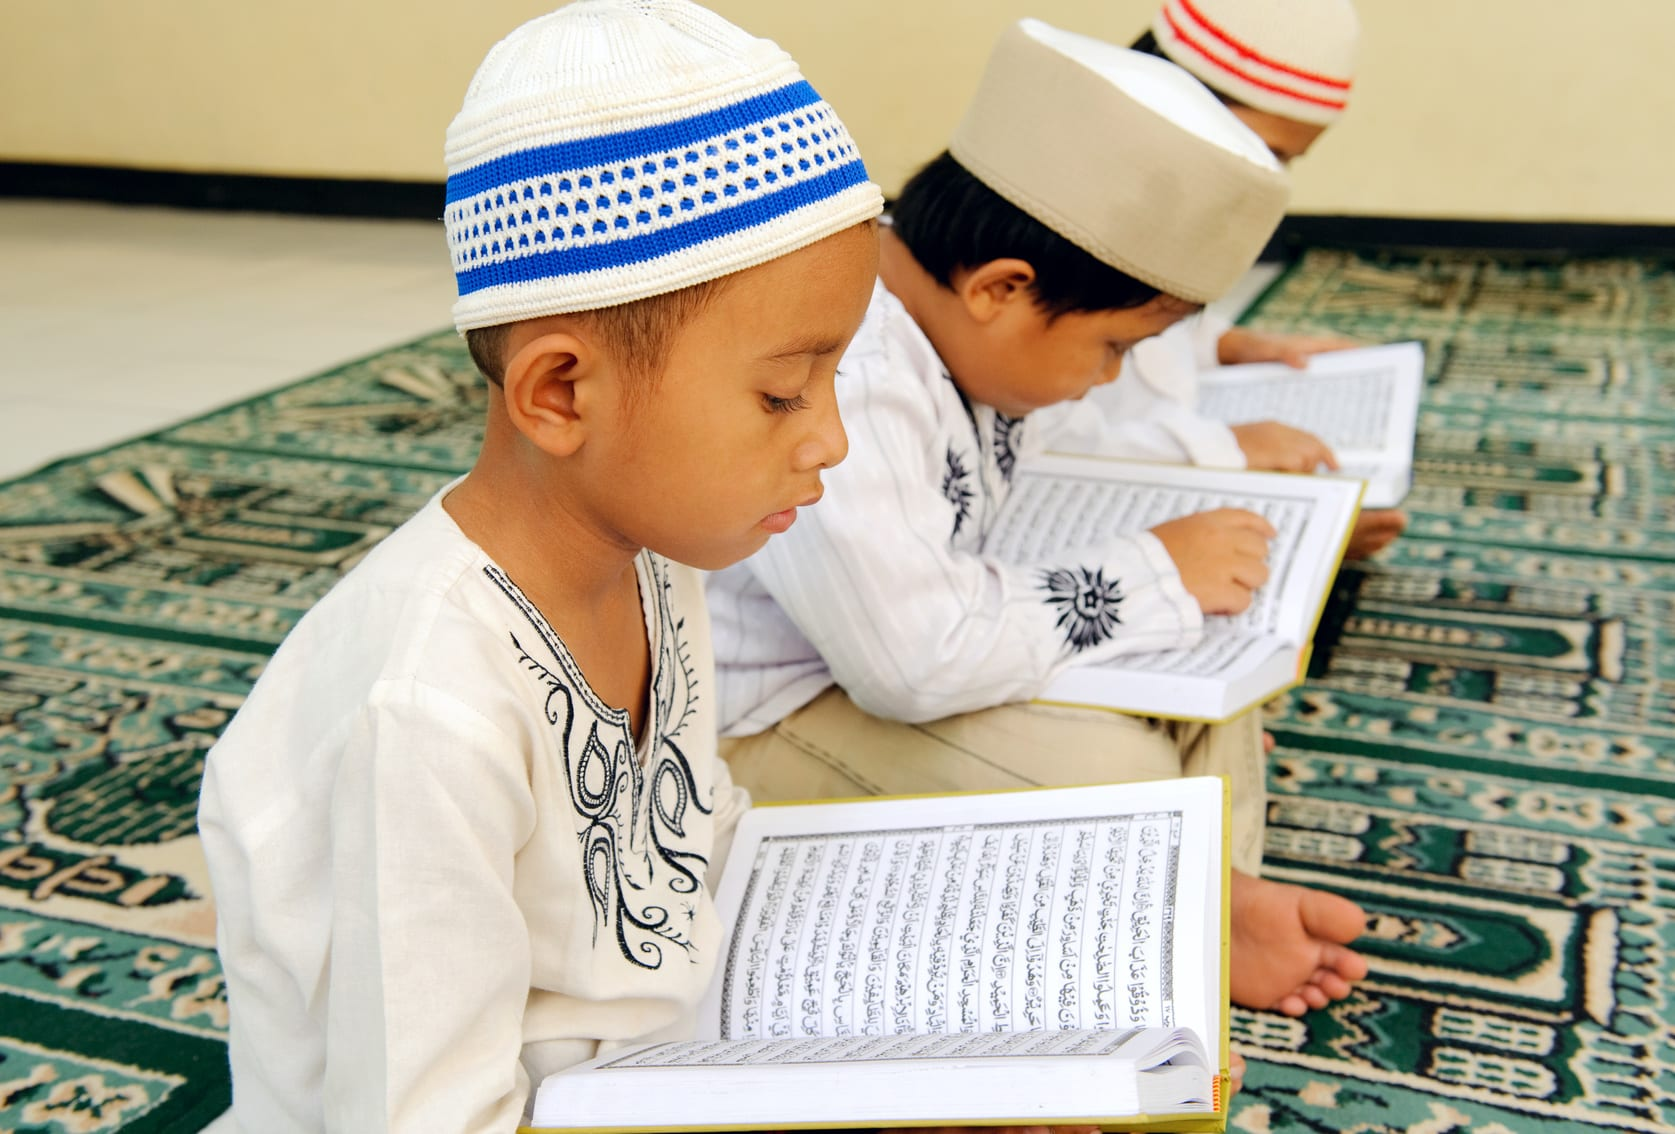 Should We, Religious Malaysians, Indoctrinate Or Teach Our